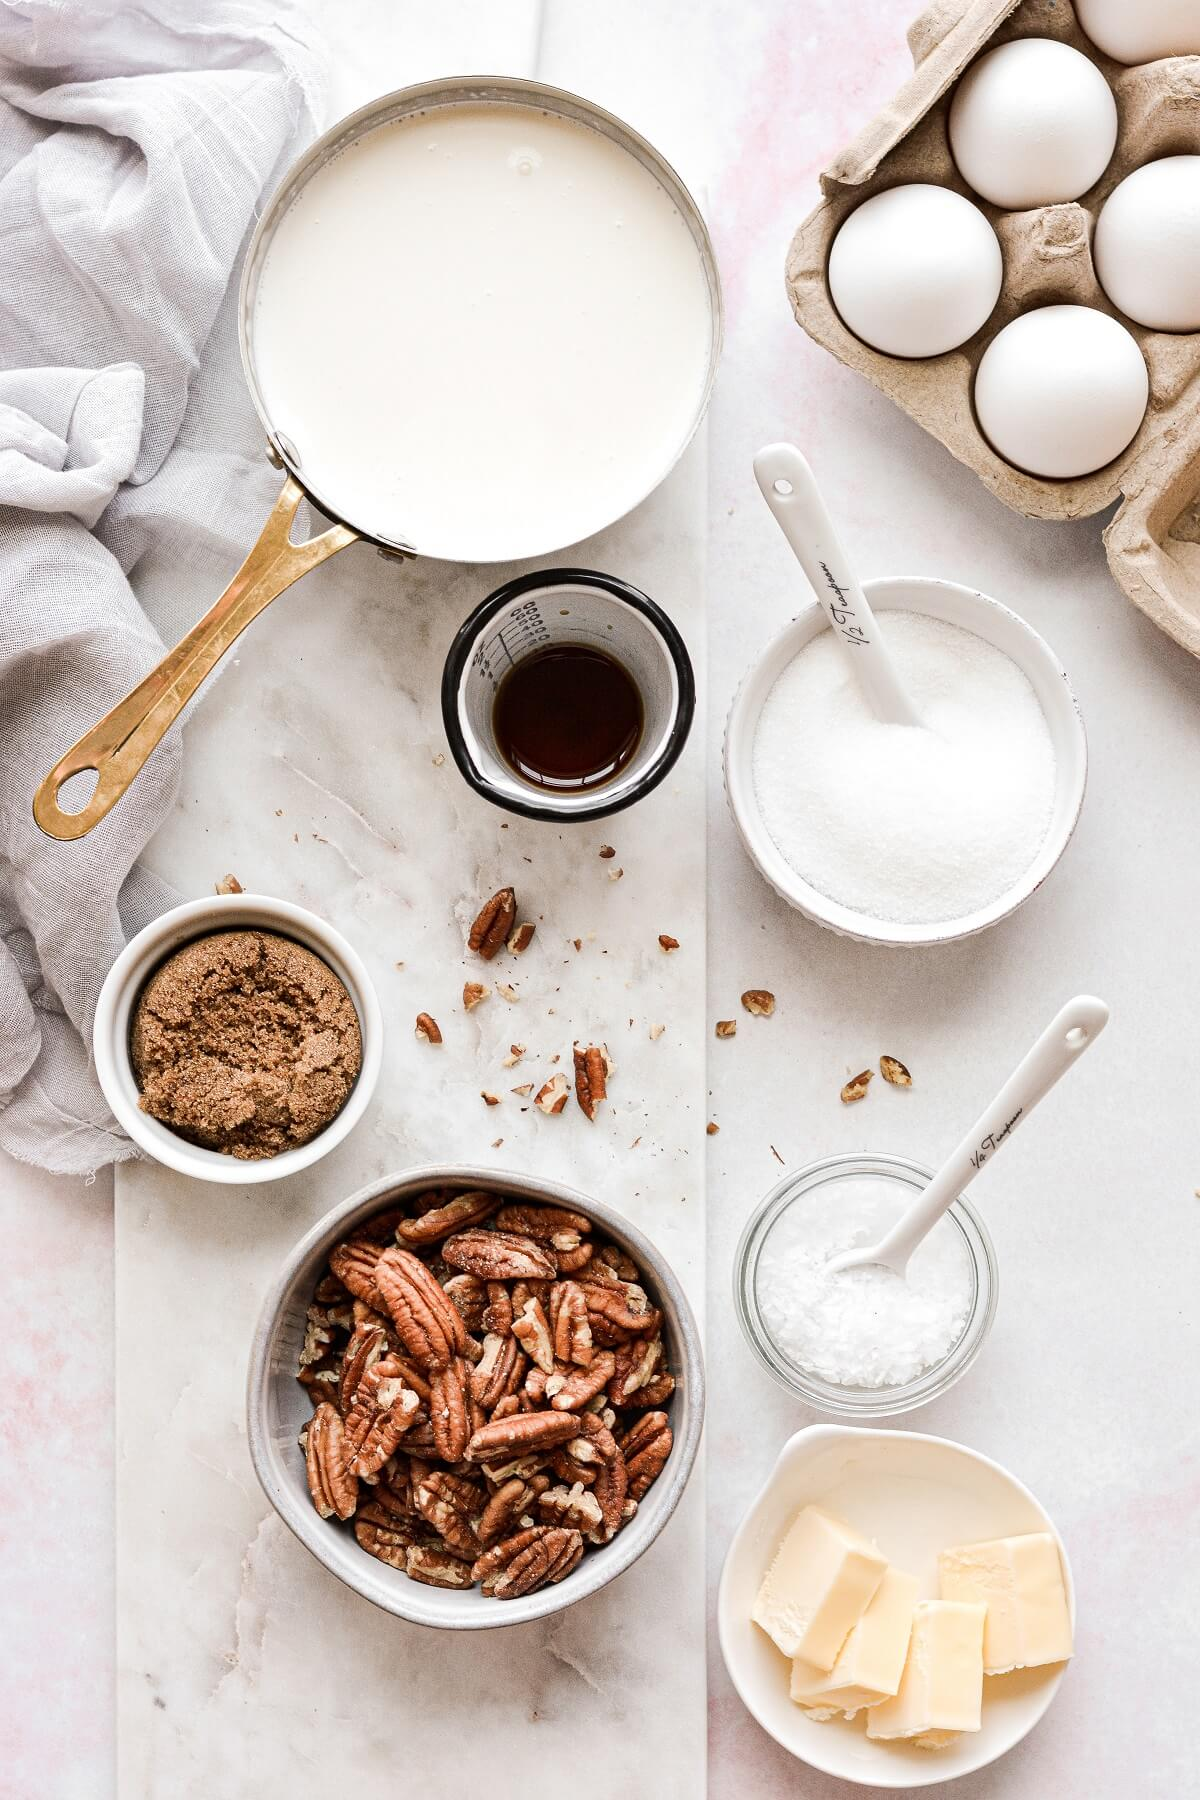 Ingredients for homemade butter pecan ice cream.